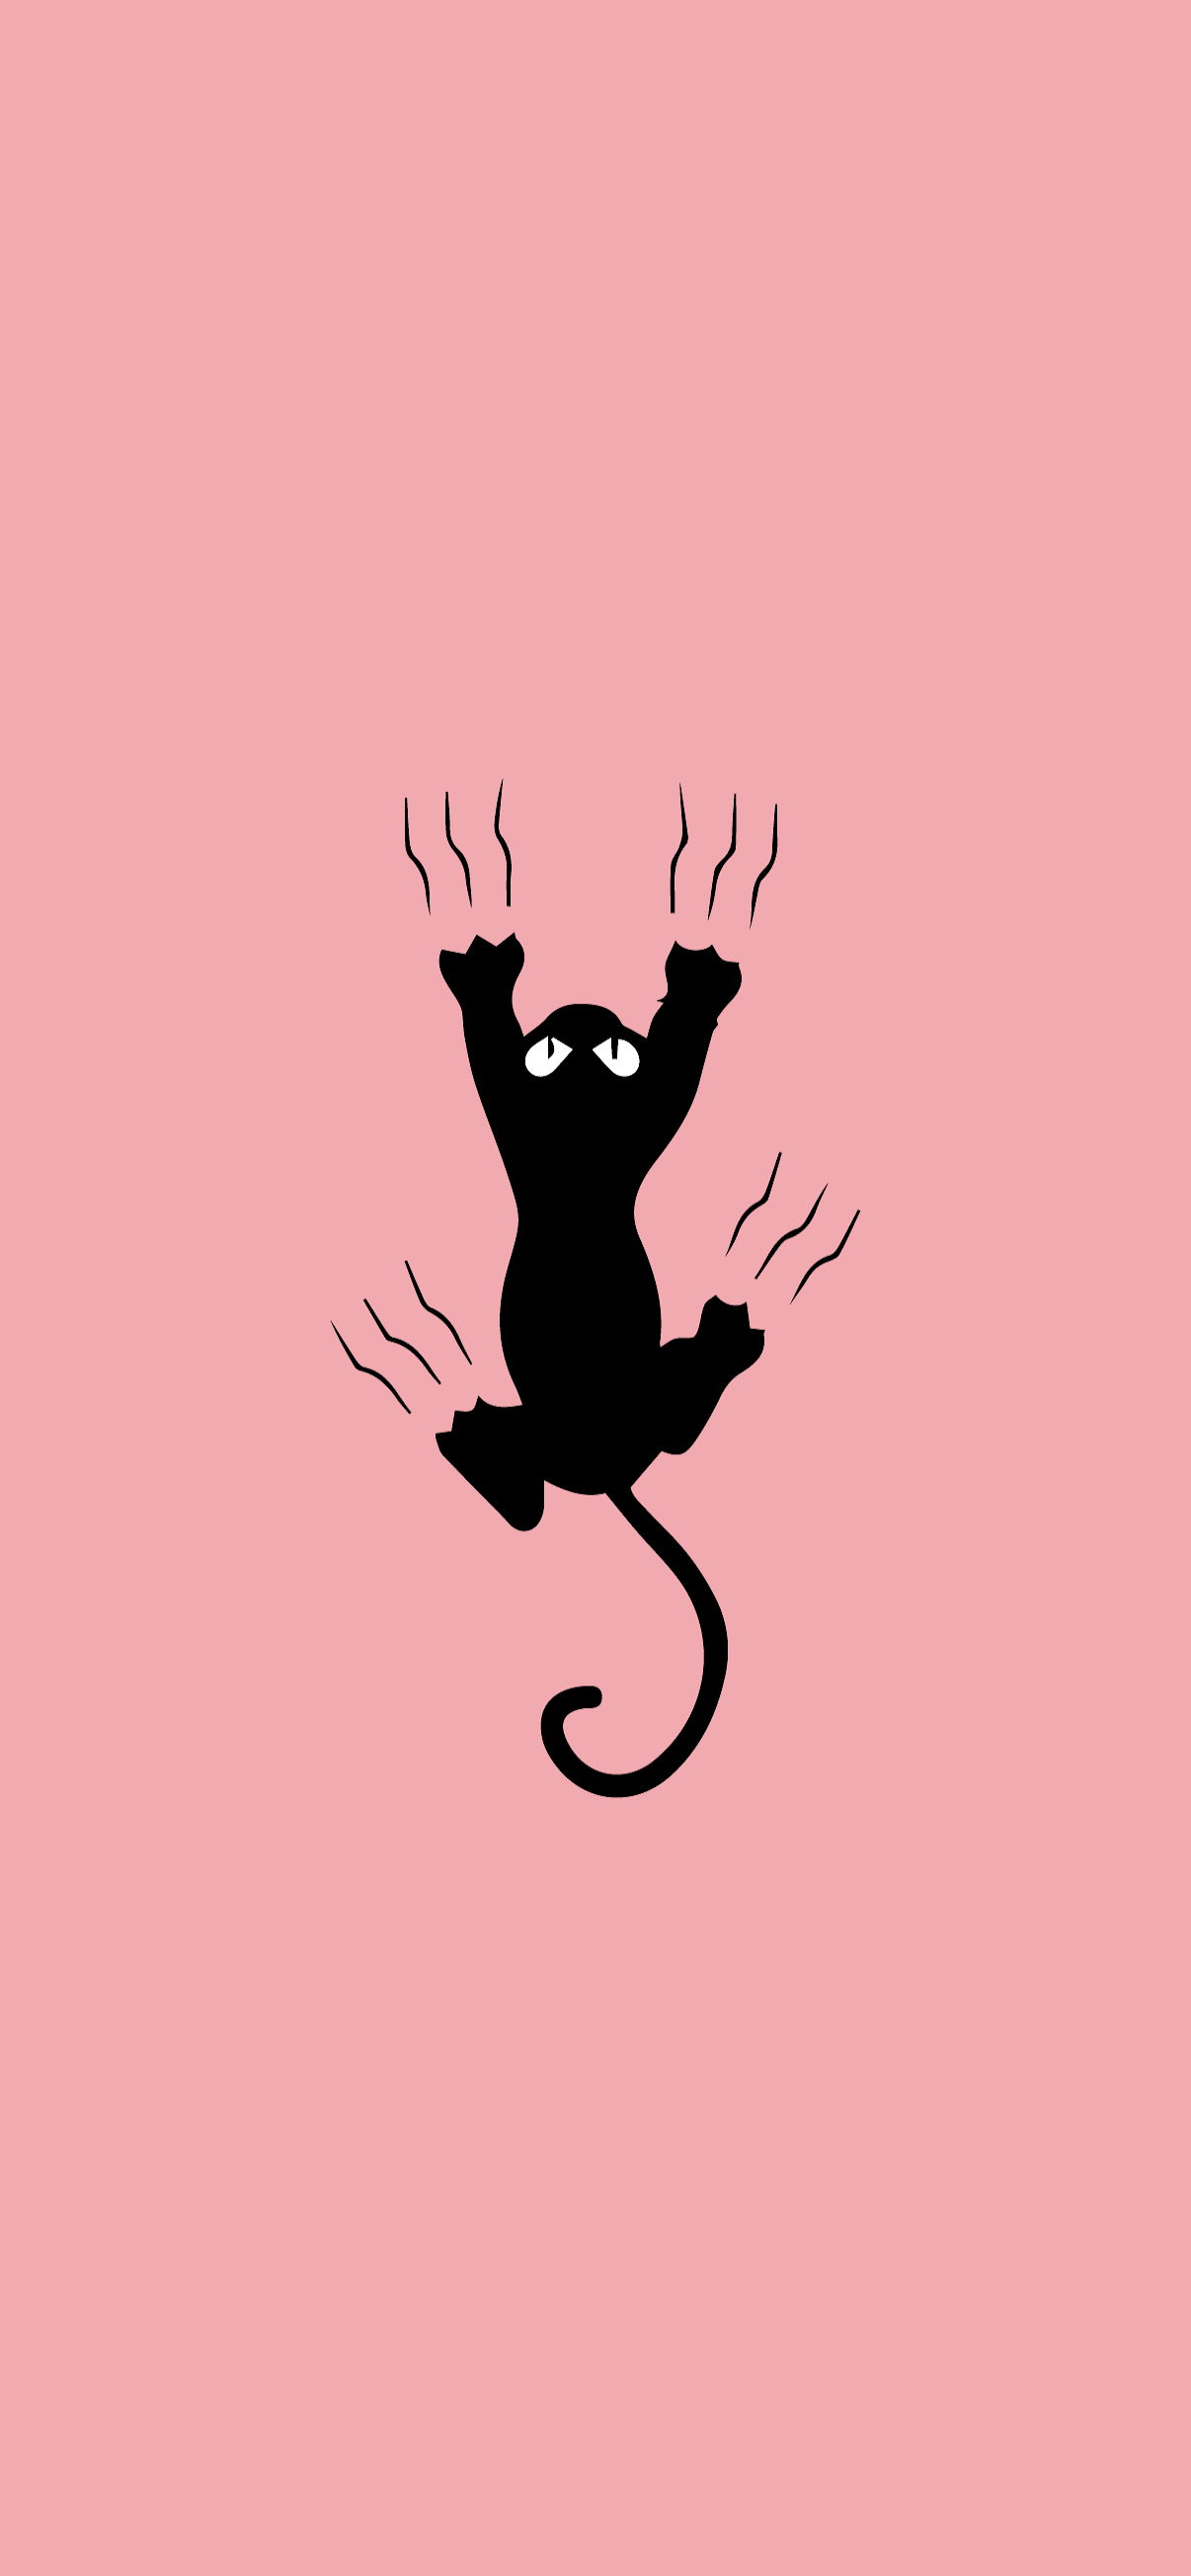 cat scratching minimalist wallpaper hd for phone pink and cute